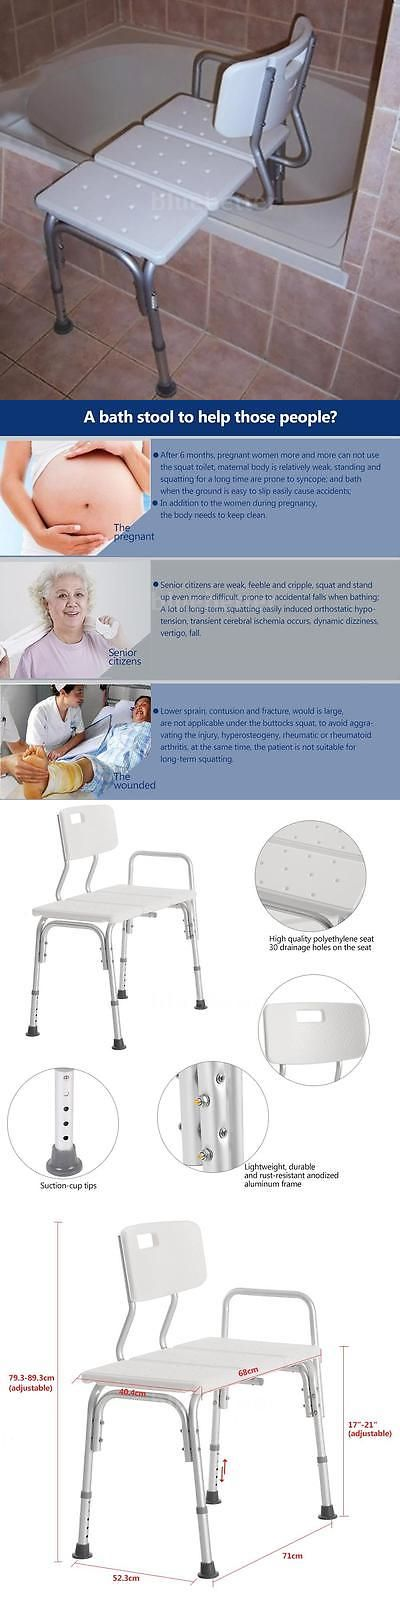 Transfer Boards and Benches: Shower Seat Medical Adjustable Bathroom Bath Tub Transfer Bench Stool Chair M2h2 -> BUY IT NOW ONLY: $48.82 on eBay!